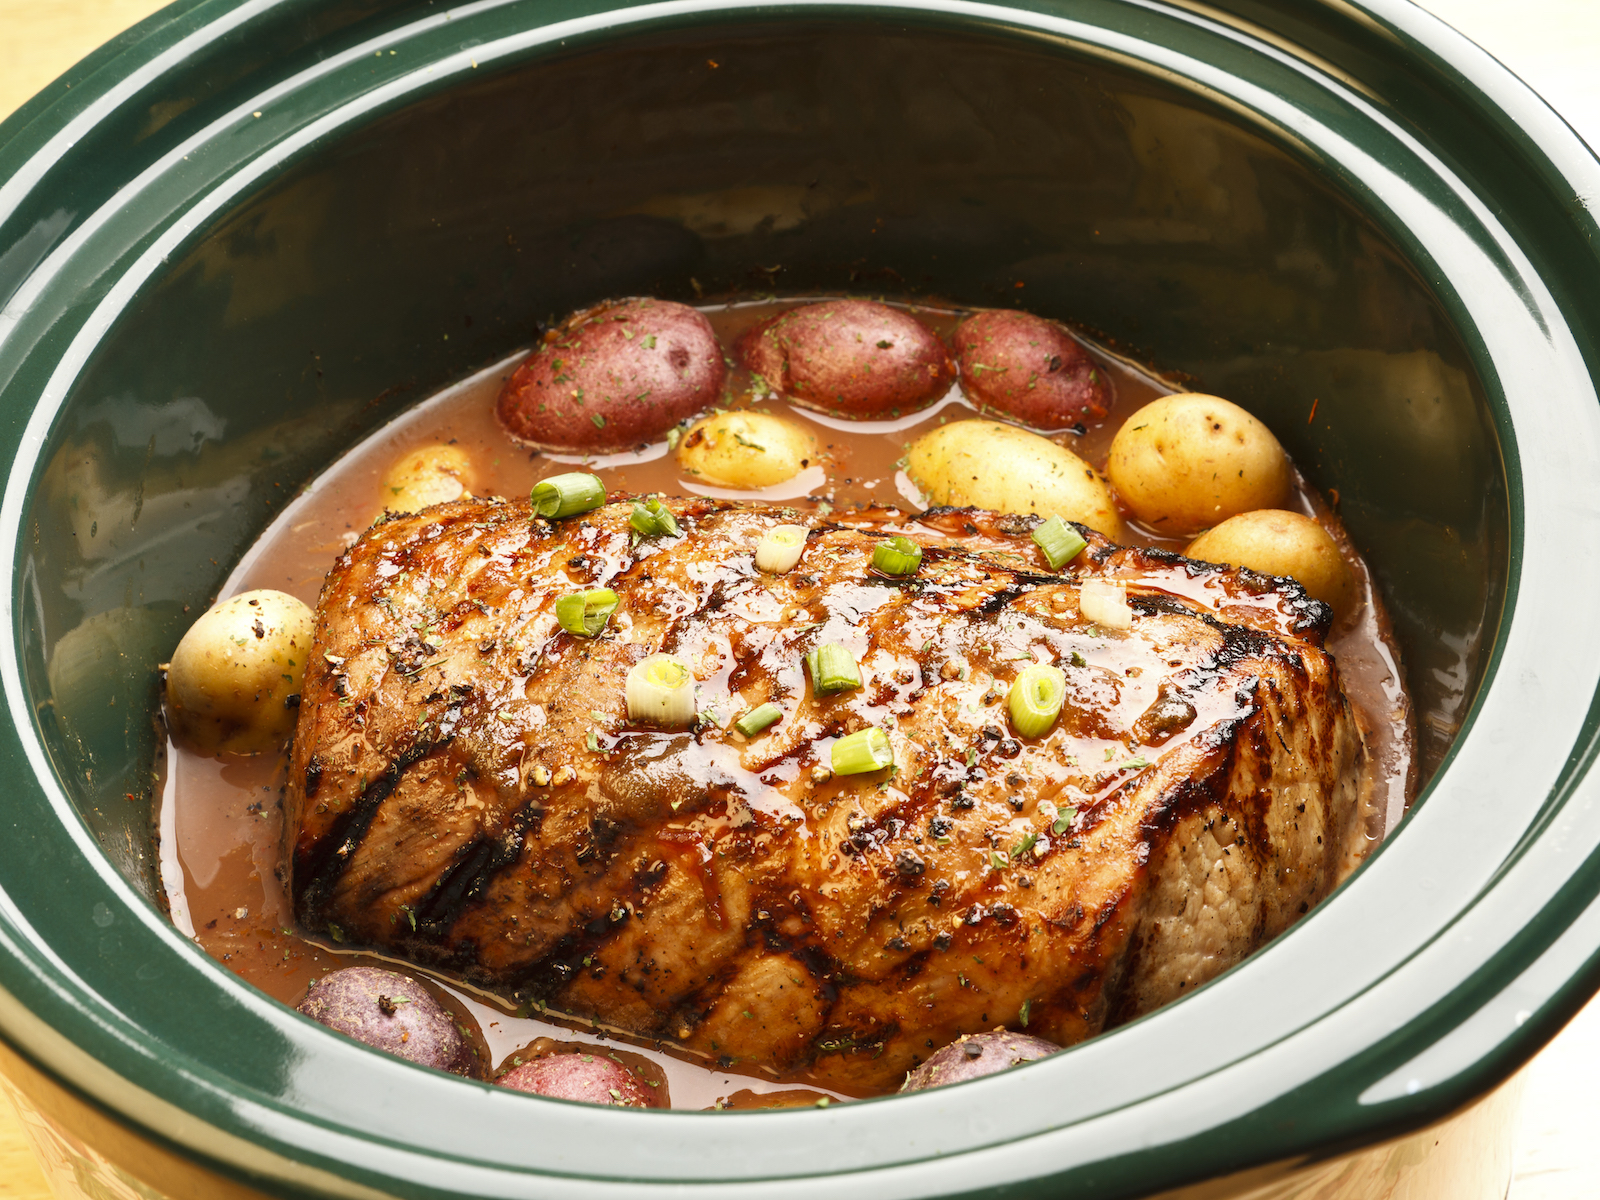 Get a Great Deal on a Crock-Pot During Amazon Prime Day